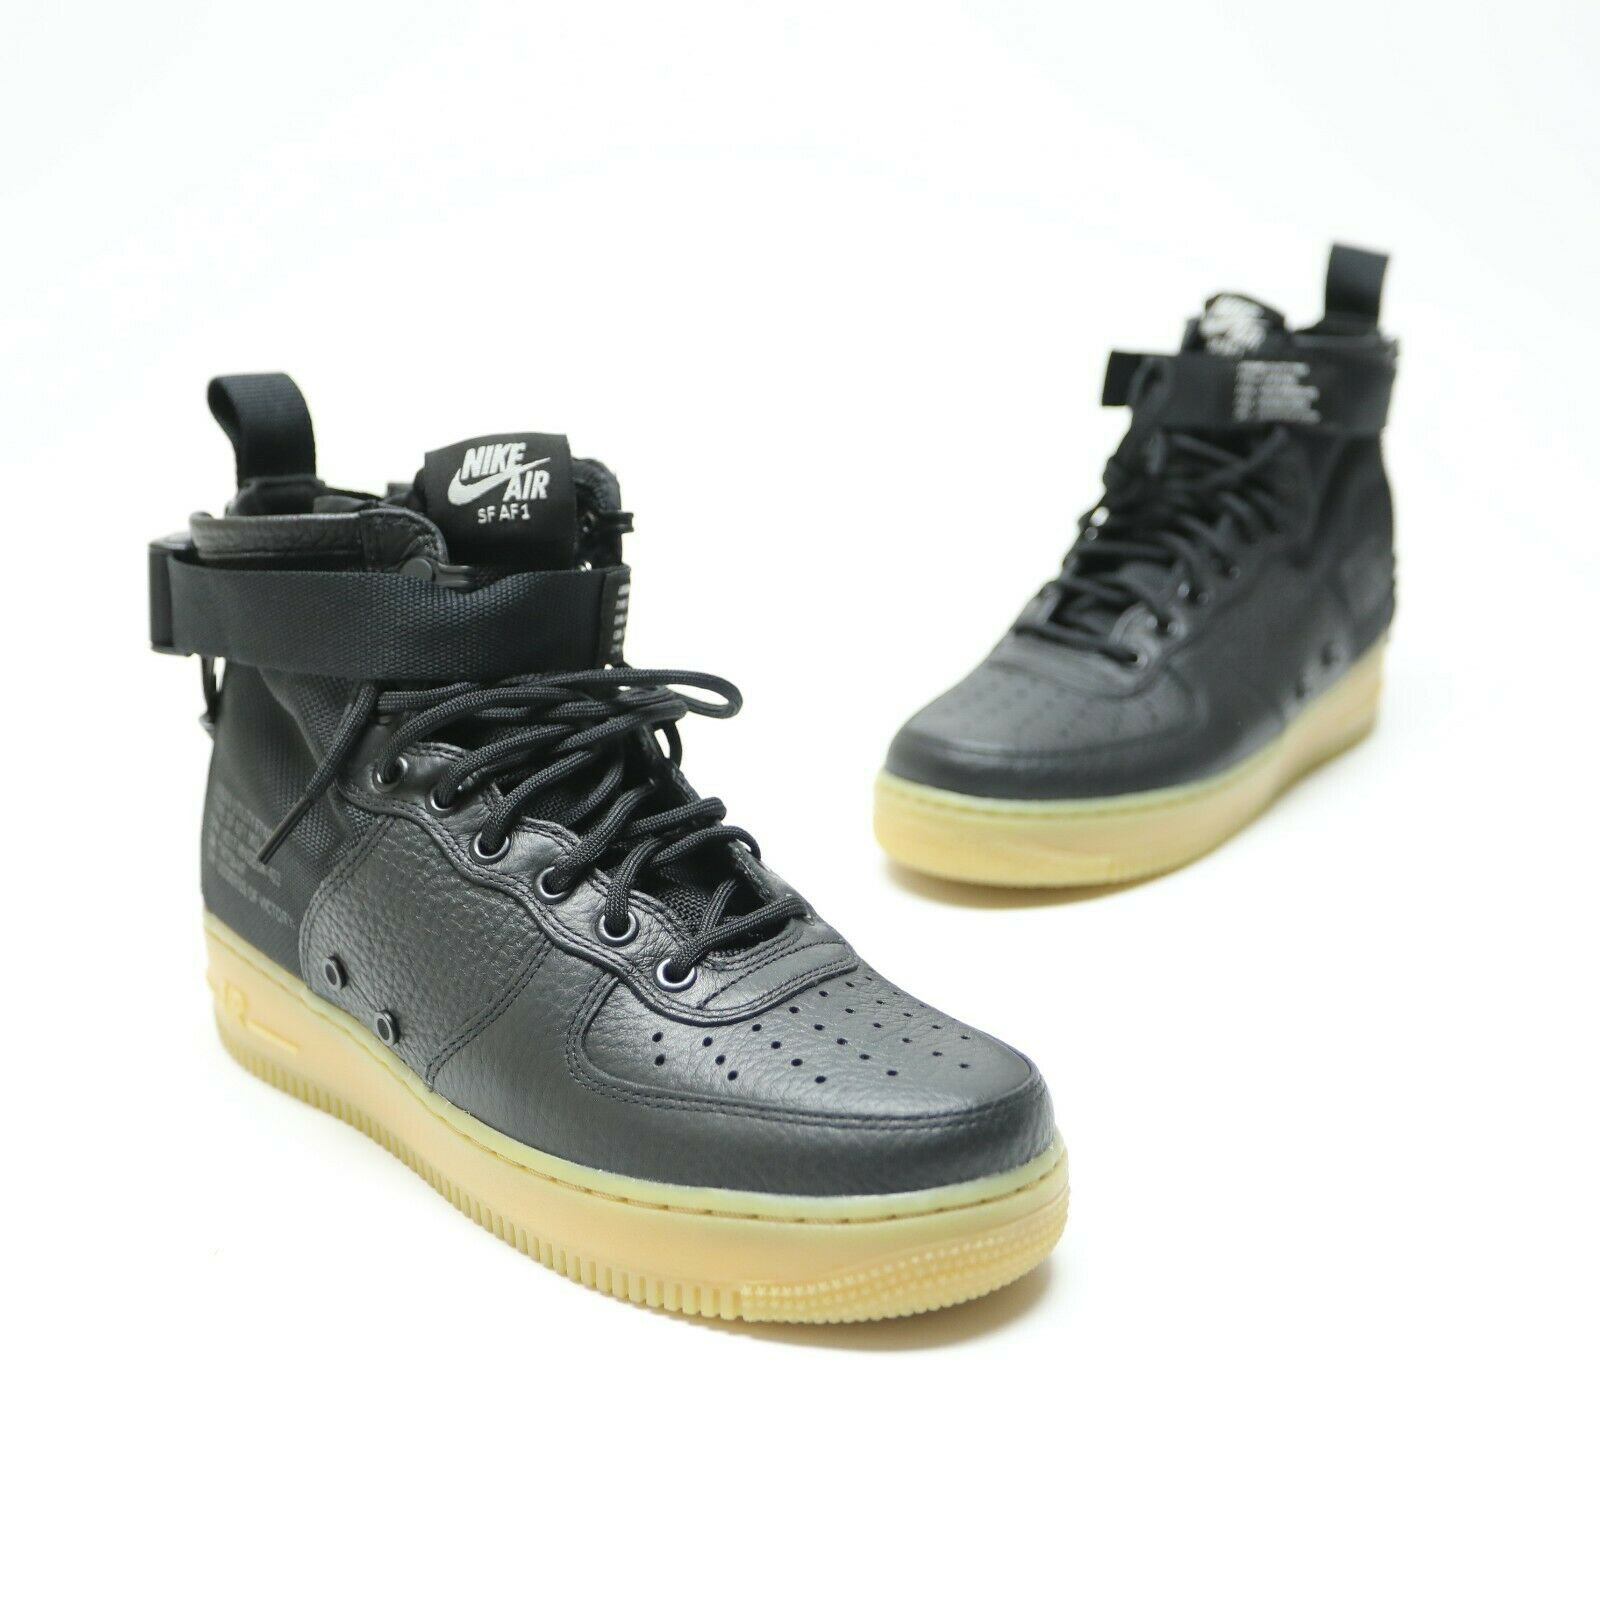 Nike Air Force 1 SF AF1 Mens Size 8 Black Leather Gum Sole shoes 917753-003 NWOB